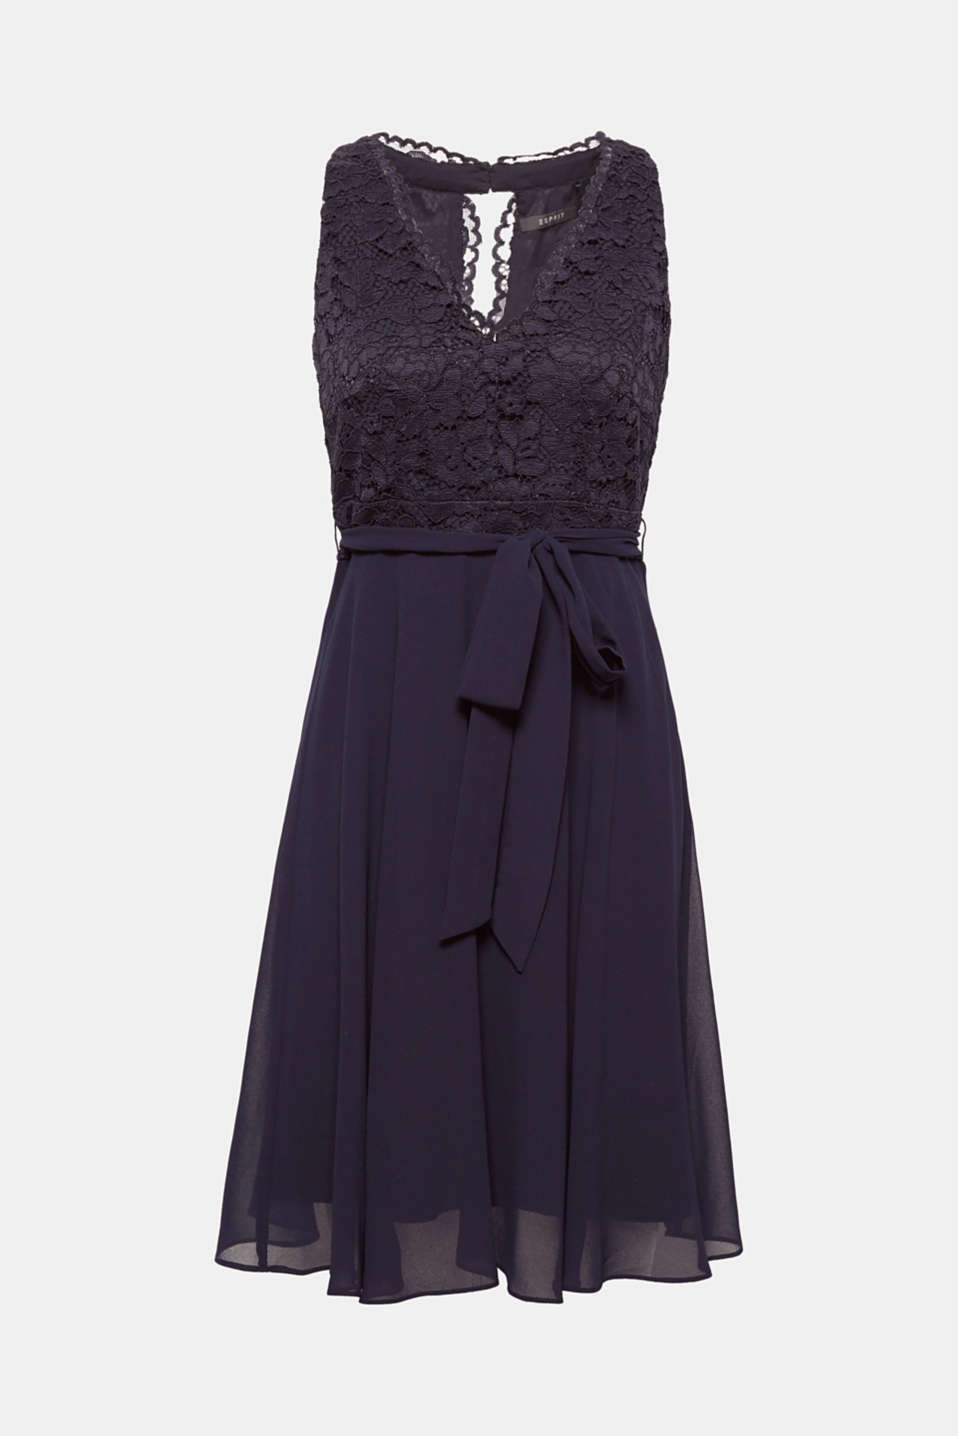 This airy cocktail dress made of 3-d effect floral lace featuring a strapless top and swirling chiffon skirt + wide, tie-around belt looks feminine and elegant!